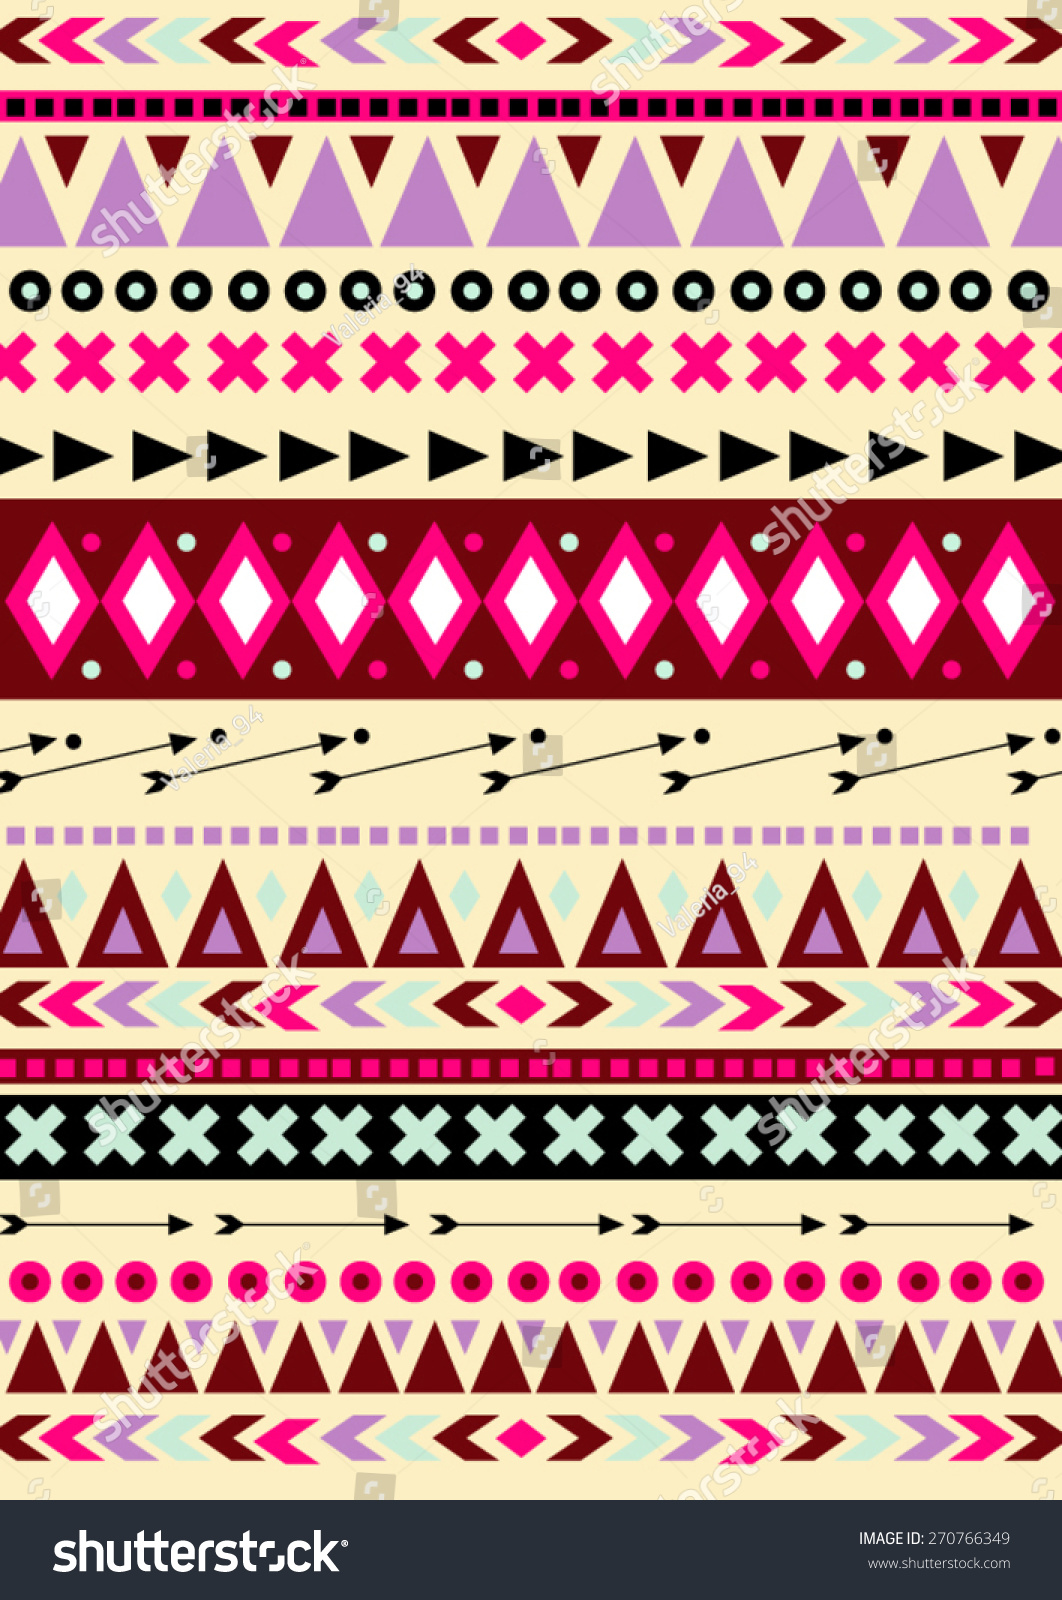 Background geometric mexican patterns seamless vector zigzag maya - Vector American Indian Aztec Mayan Ethnic Border Background It Can Be Used For Wallpaper